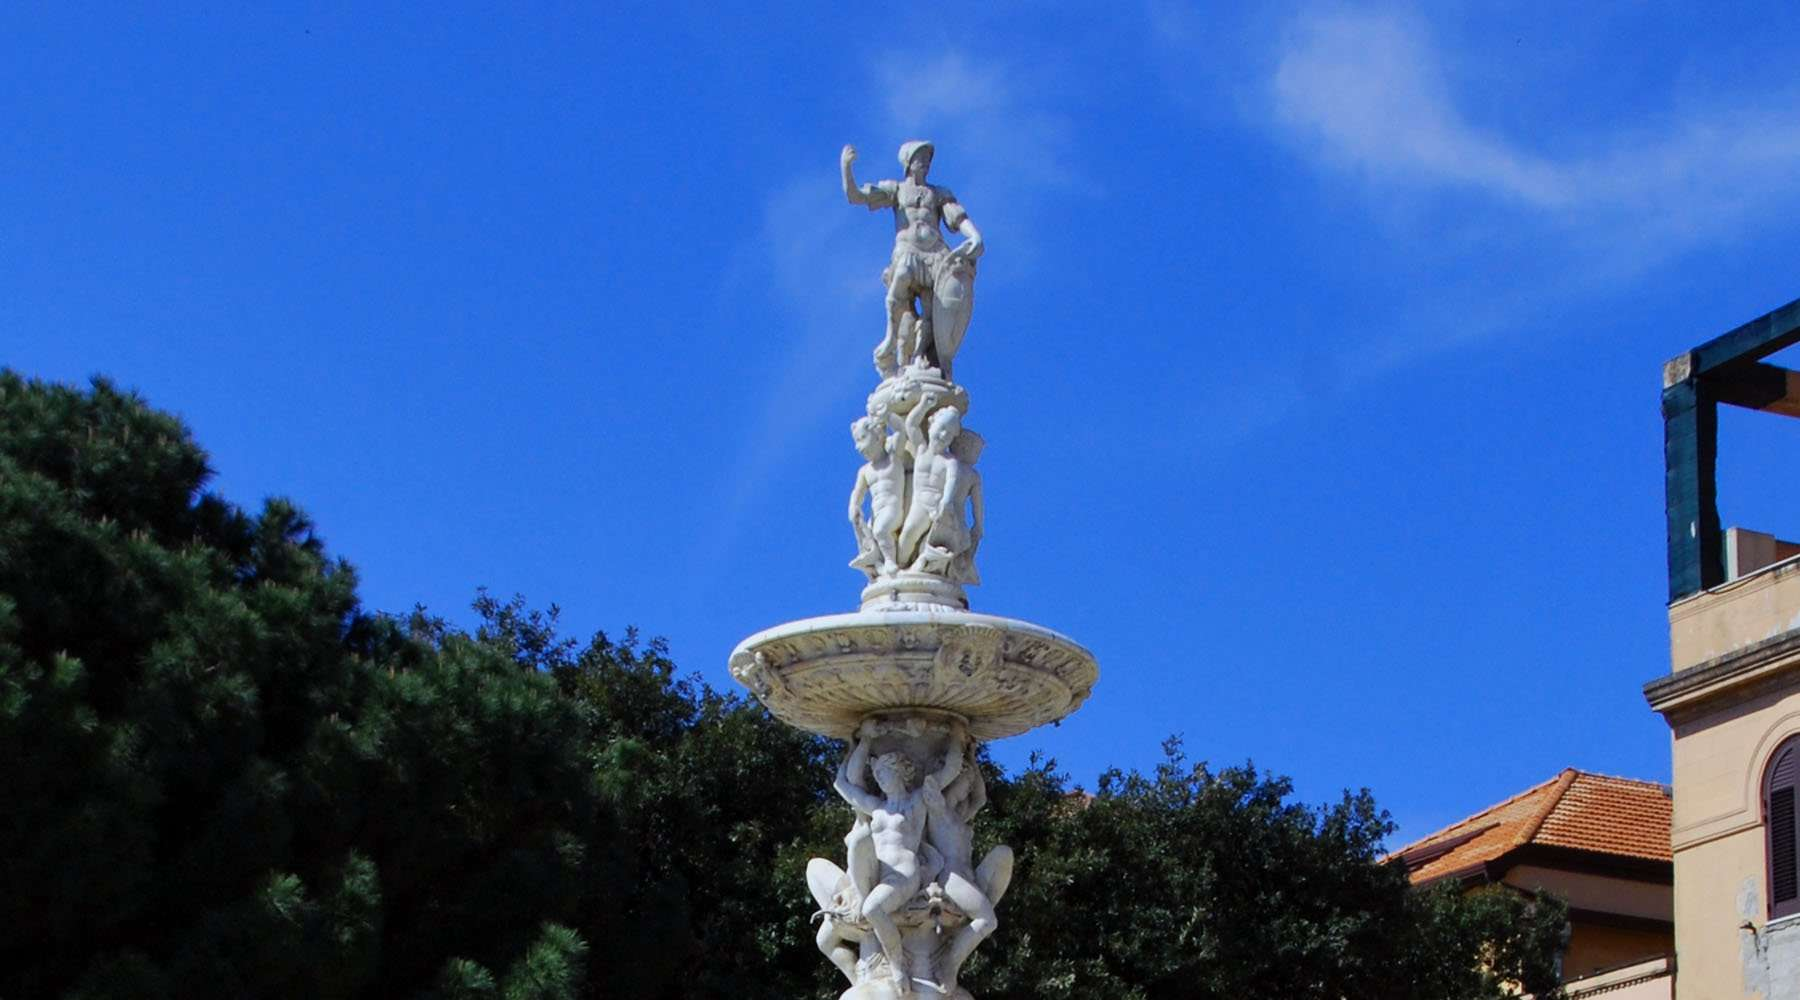 Orion Mythology, Orion fountain in Messina